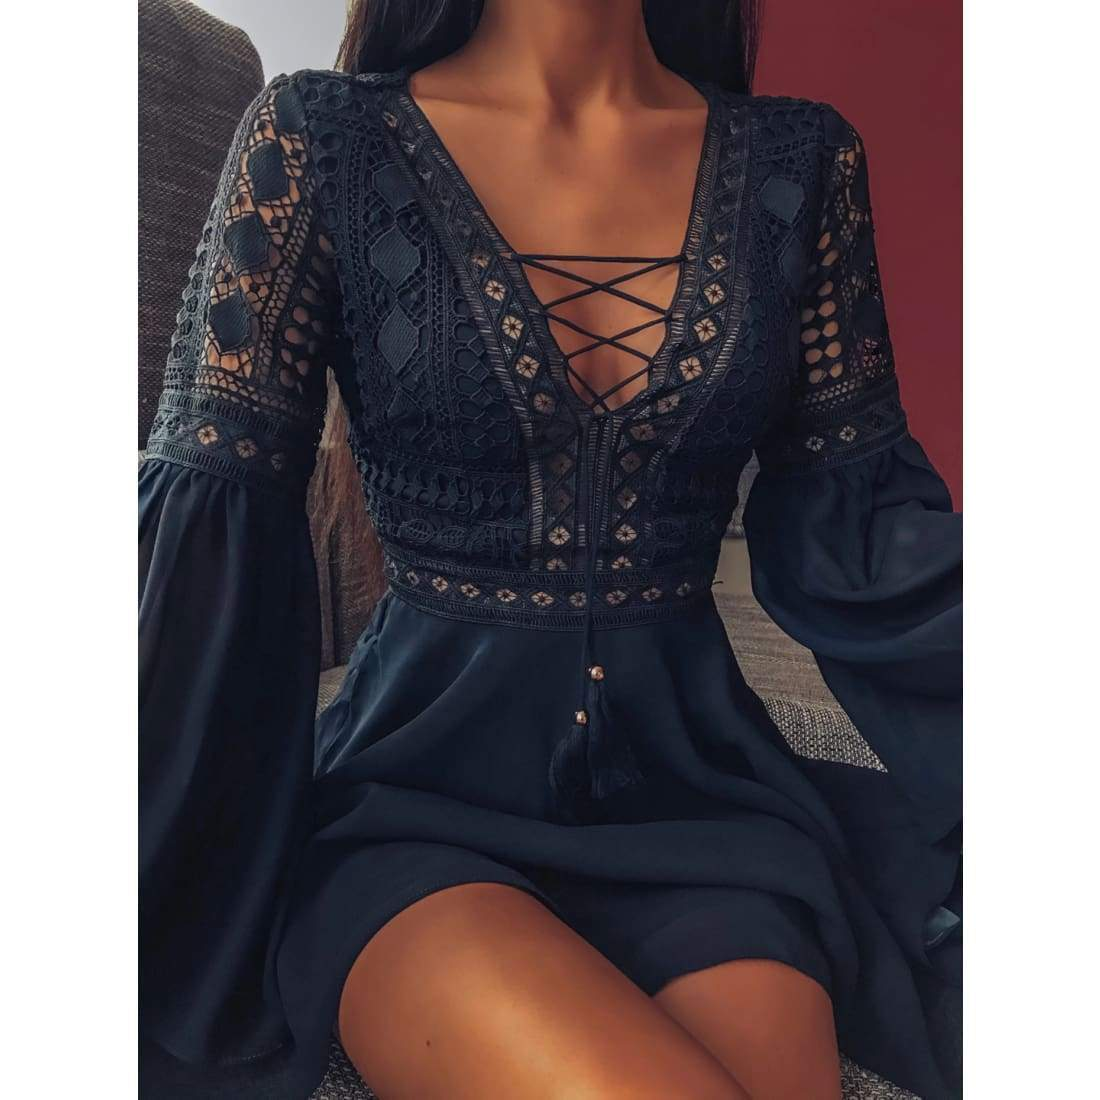 Sunset lace dress - Lace Black / S - mini dress